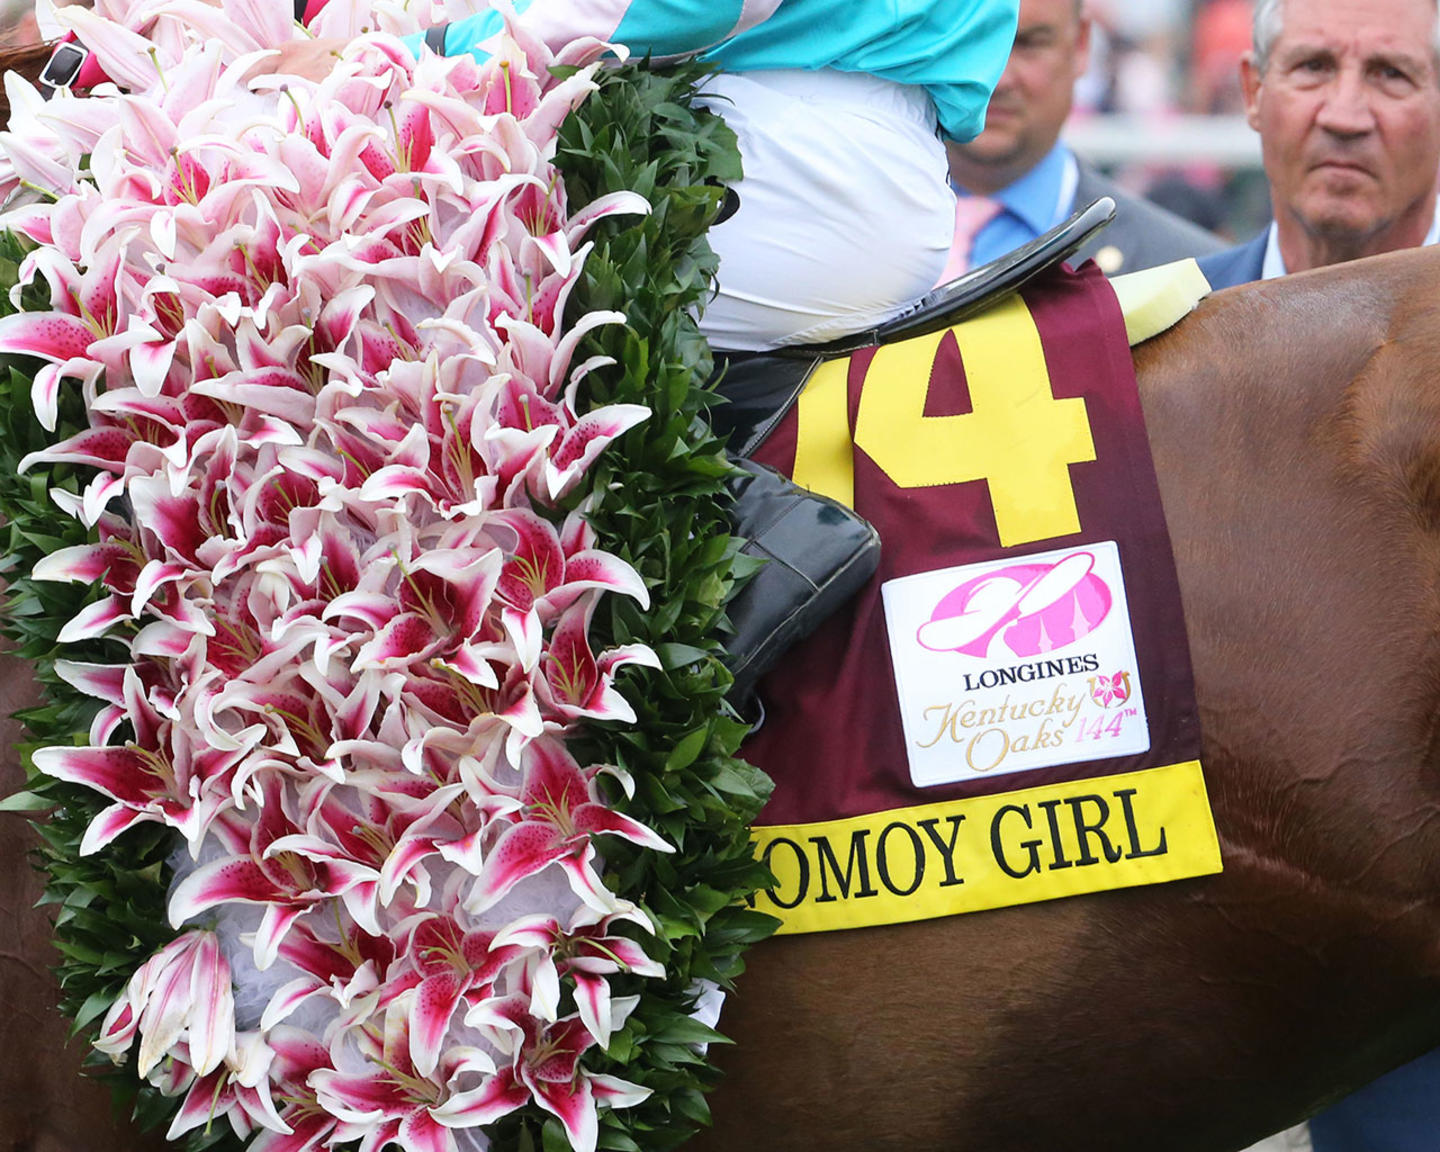 MONOMOY-GIRL---Longines-Kentucky-Oaks---G1---144th-Running---05-04-18---R11---CD---Post-Race-09